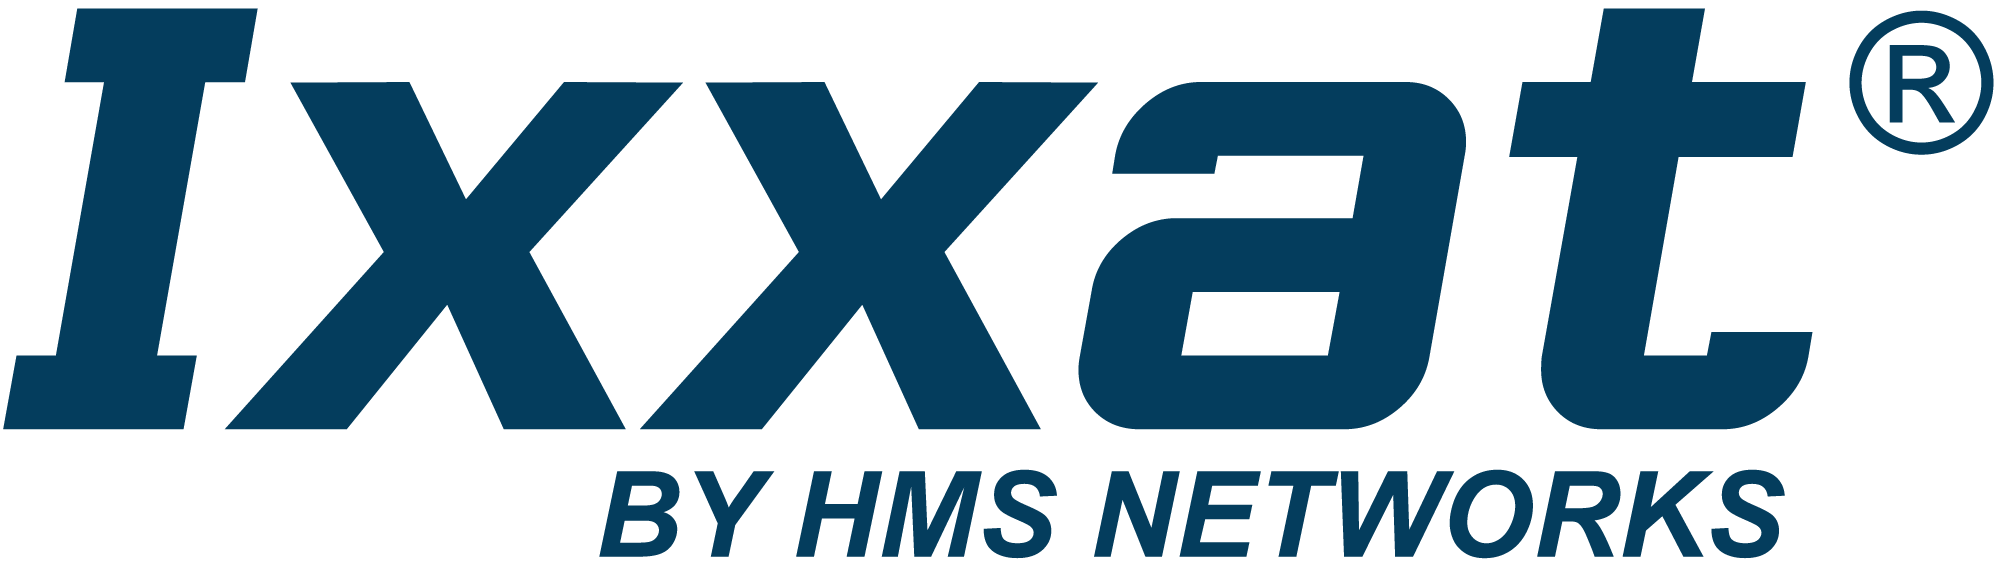 Ixxat-by-HMS-networks